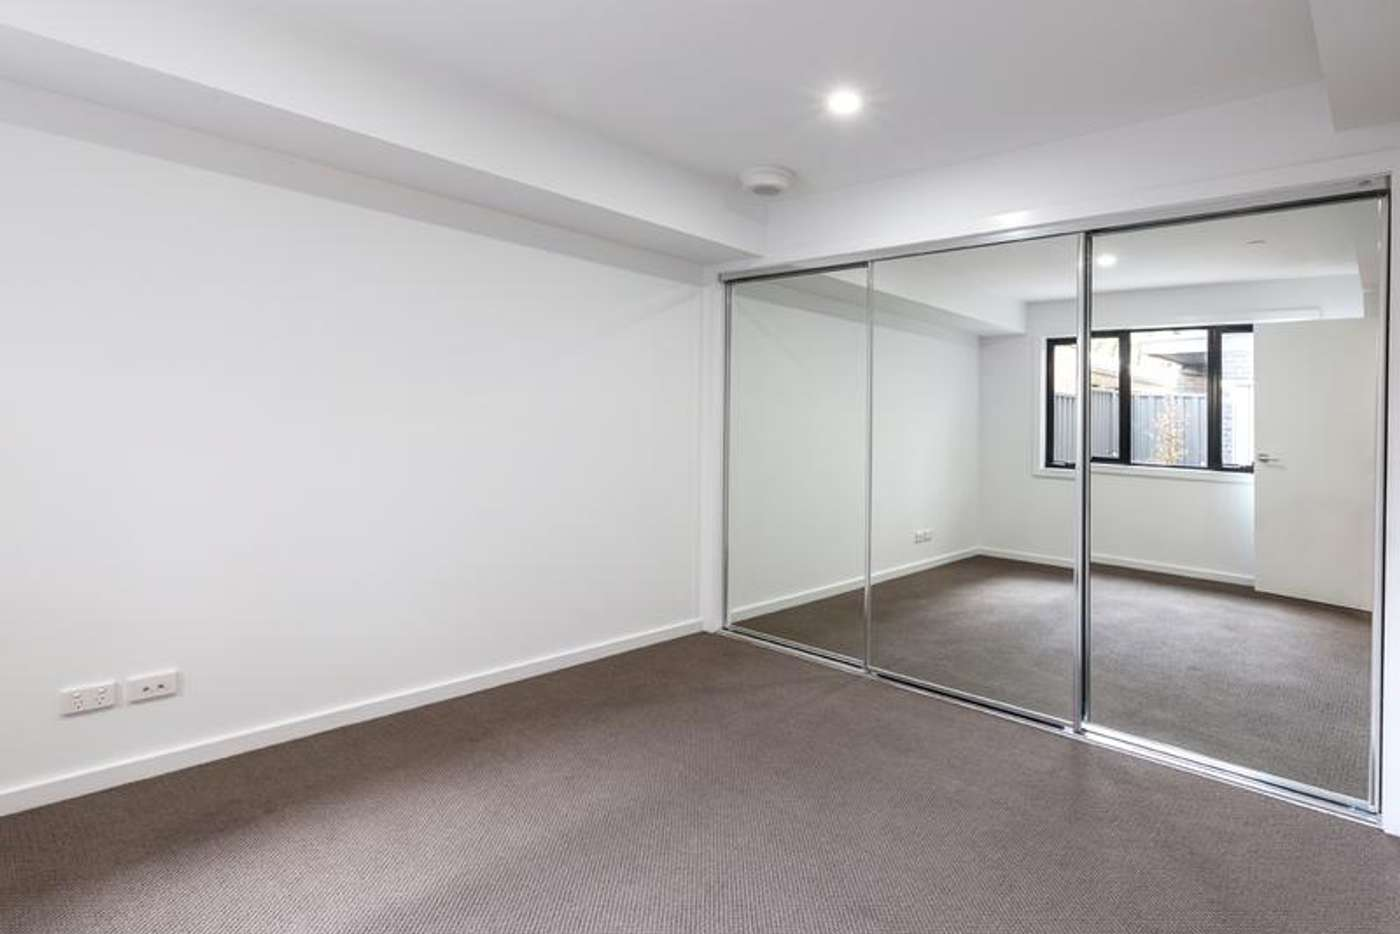 Seventh view of Homely apartment listing, 6/495 South Road, Bentleigh VIC 3204